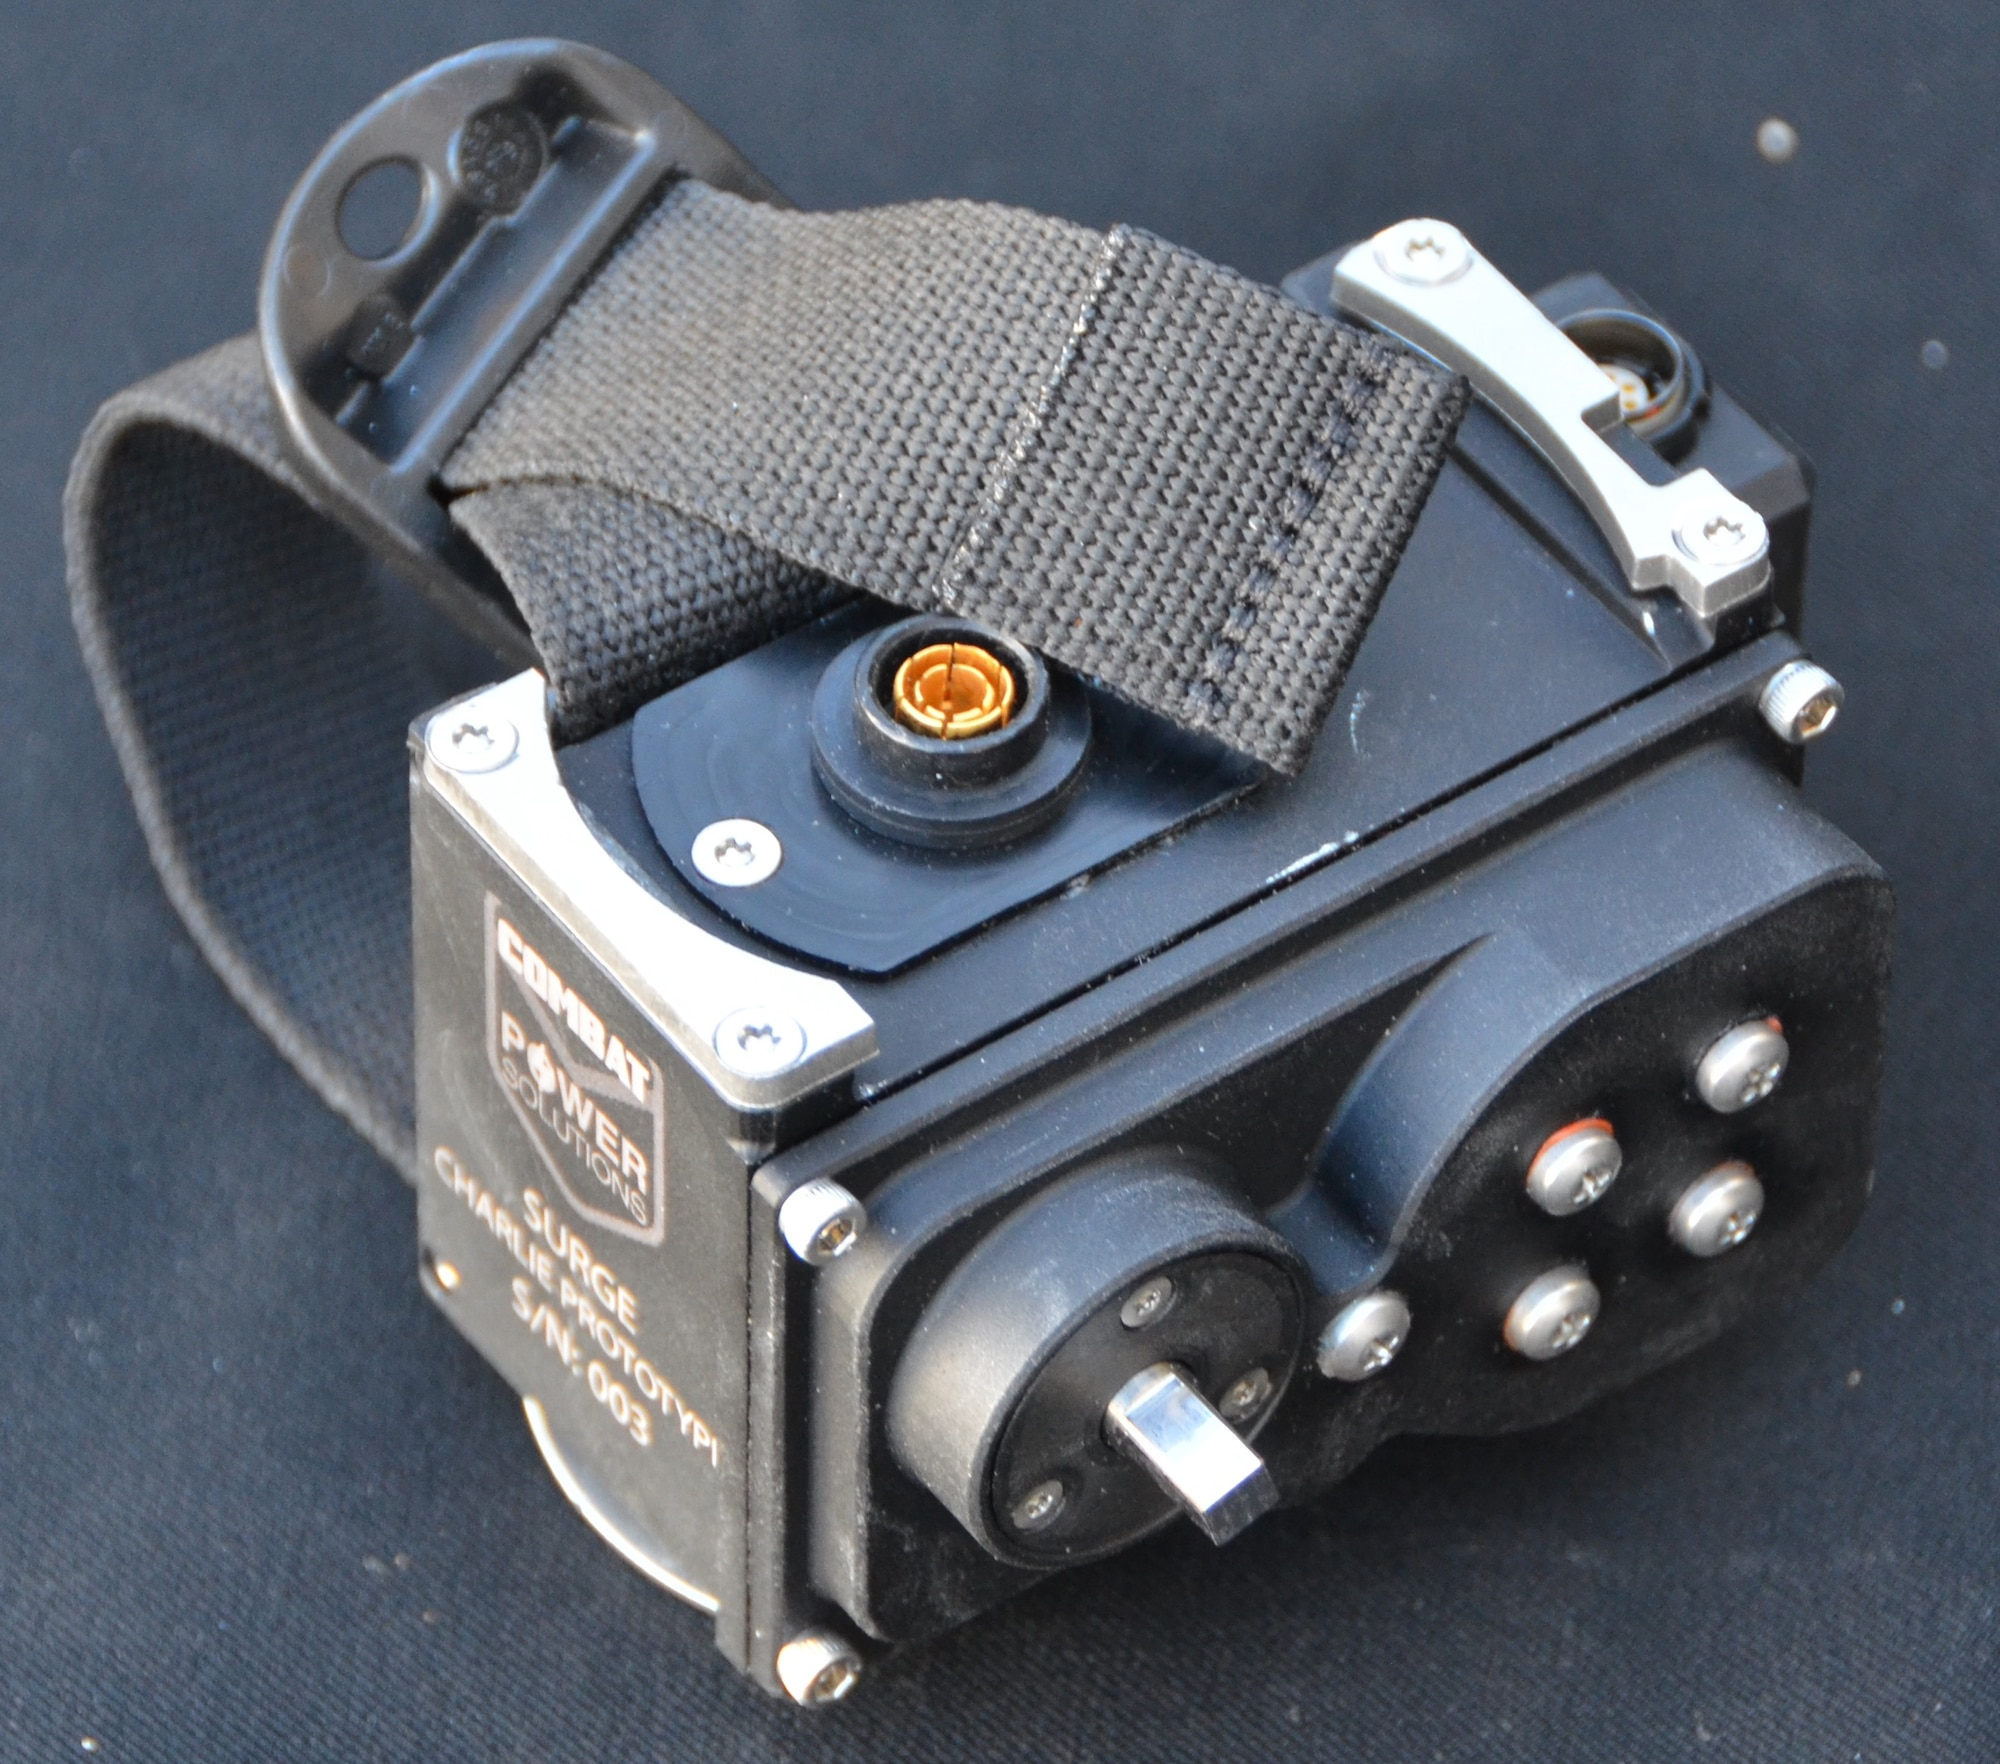 The 711 Human Performance Wing's Battlefield Air Targeting Man-Aided Knowledge team aided contractor Combat Power Solutions' Small Business Innovation Research project to develop a much-needed warfighter capability: a portable charging device (shown by itself here in its final prototype) for a radio that is critical during combat survival. (Photo courtesy of Combat Power Solutions, LLC)